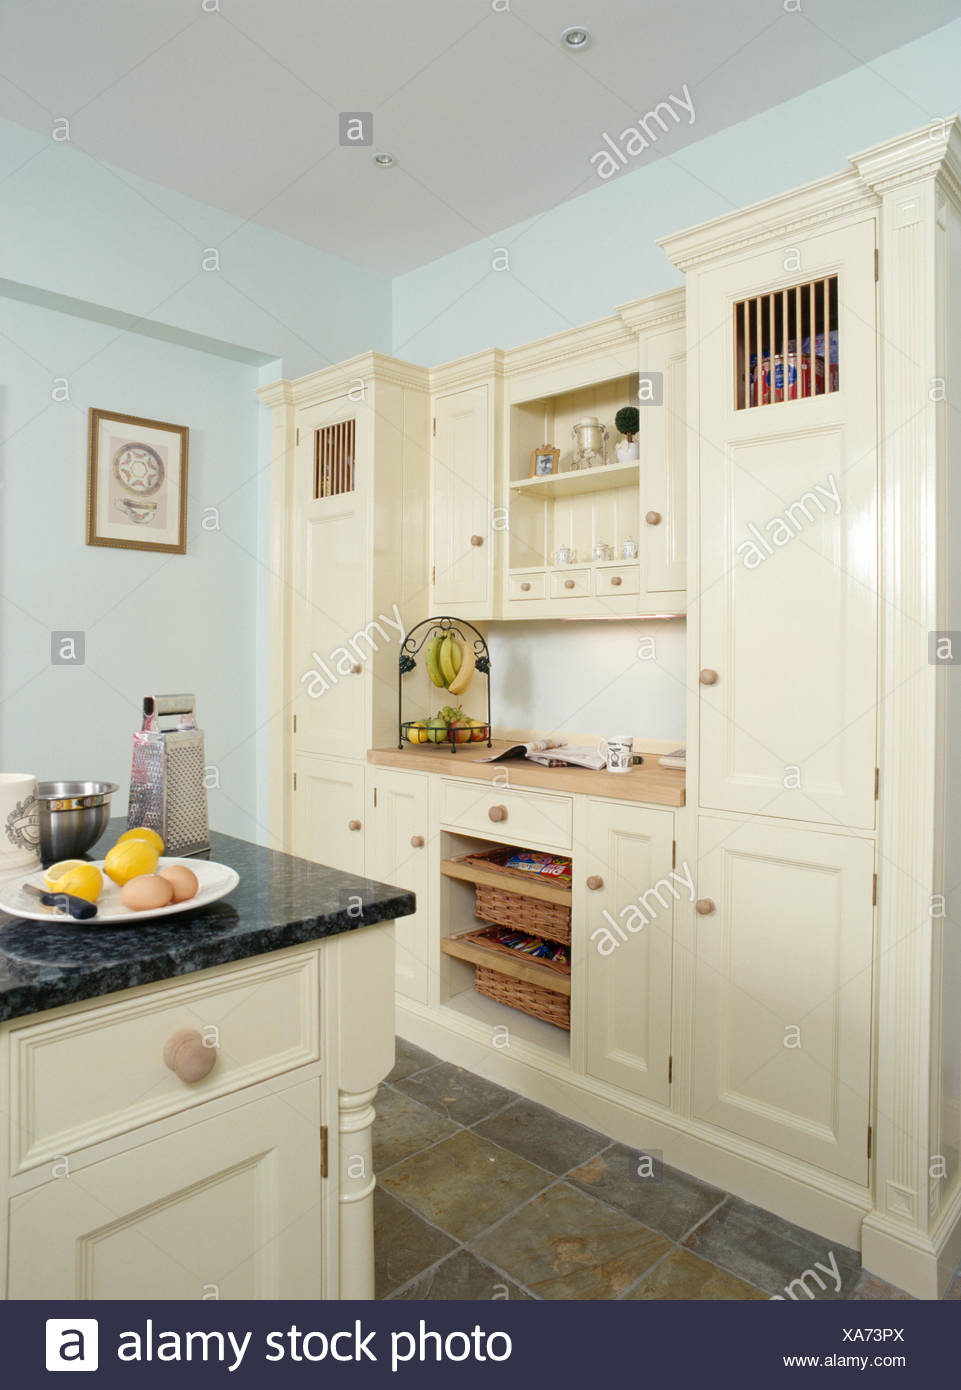 Blue Fitted Cupboards In Kitchen Stock Photos & Blue Fitted ...